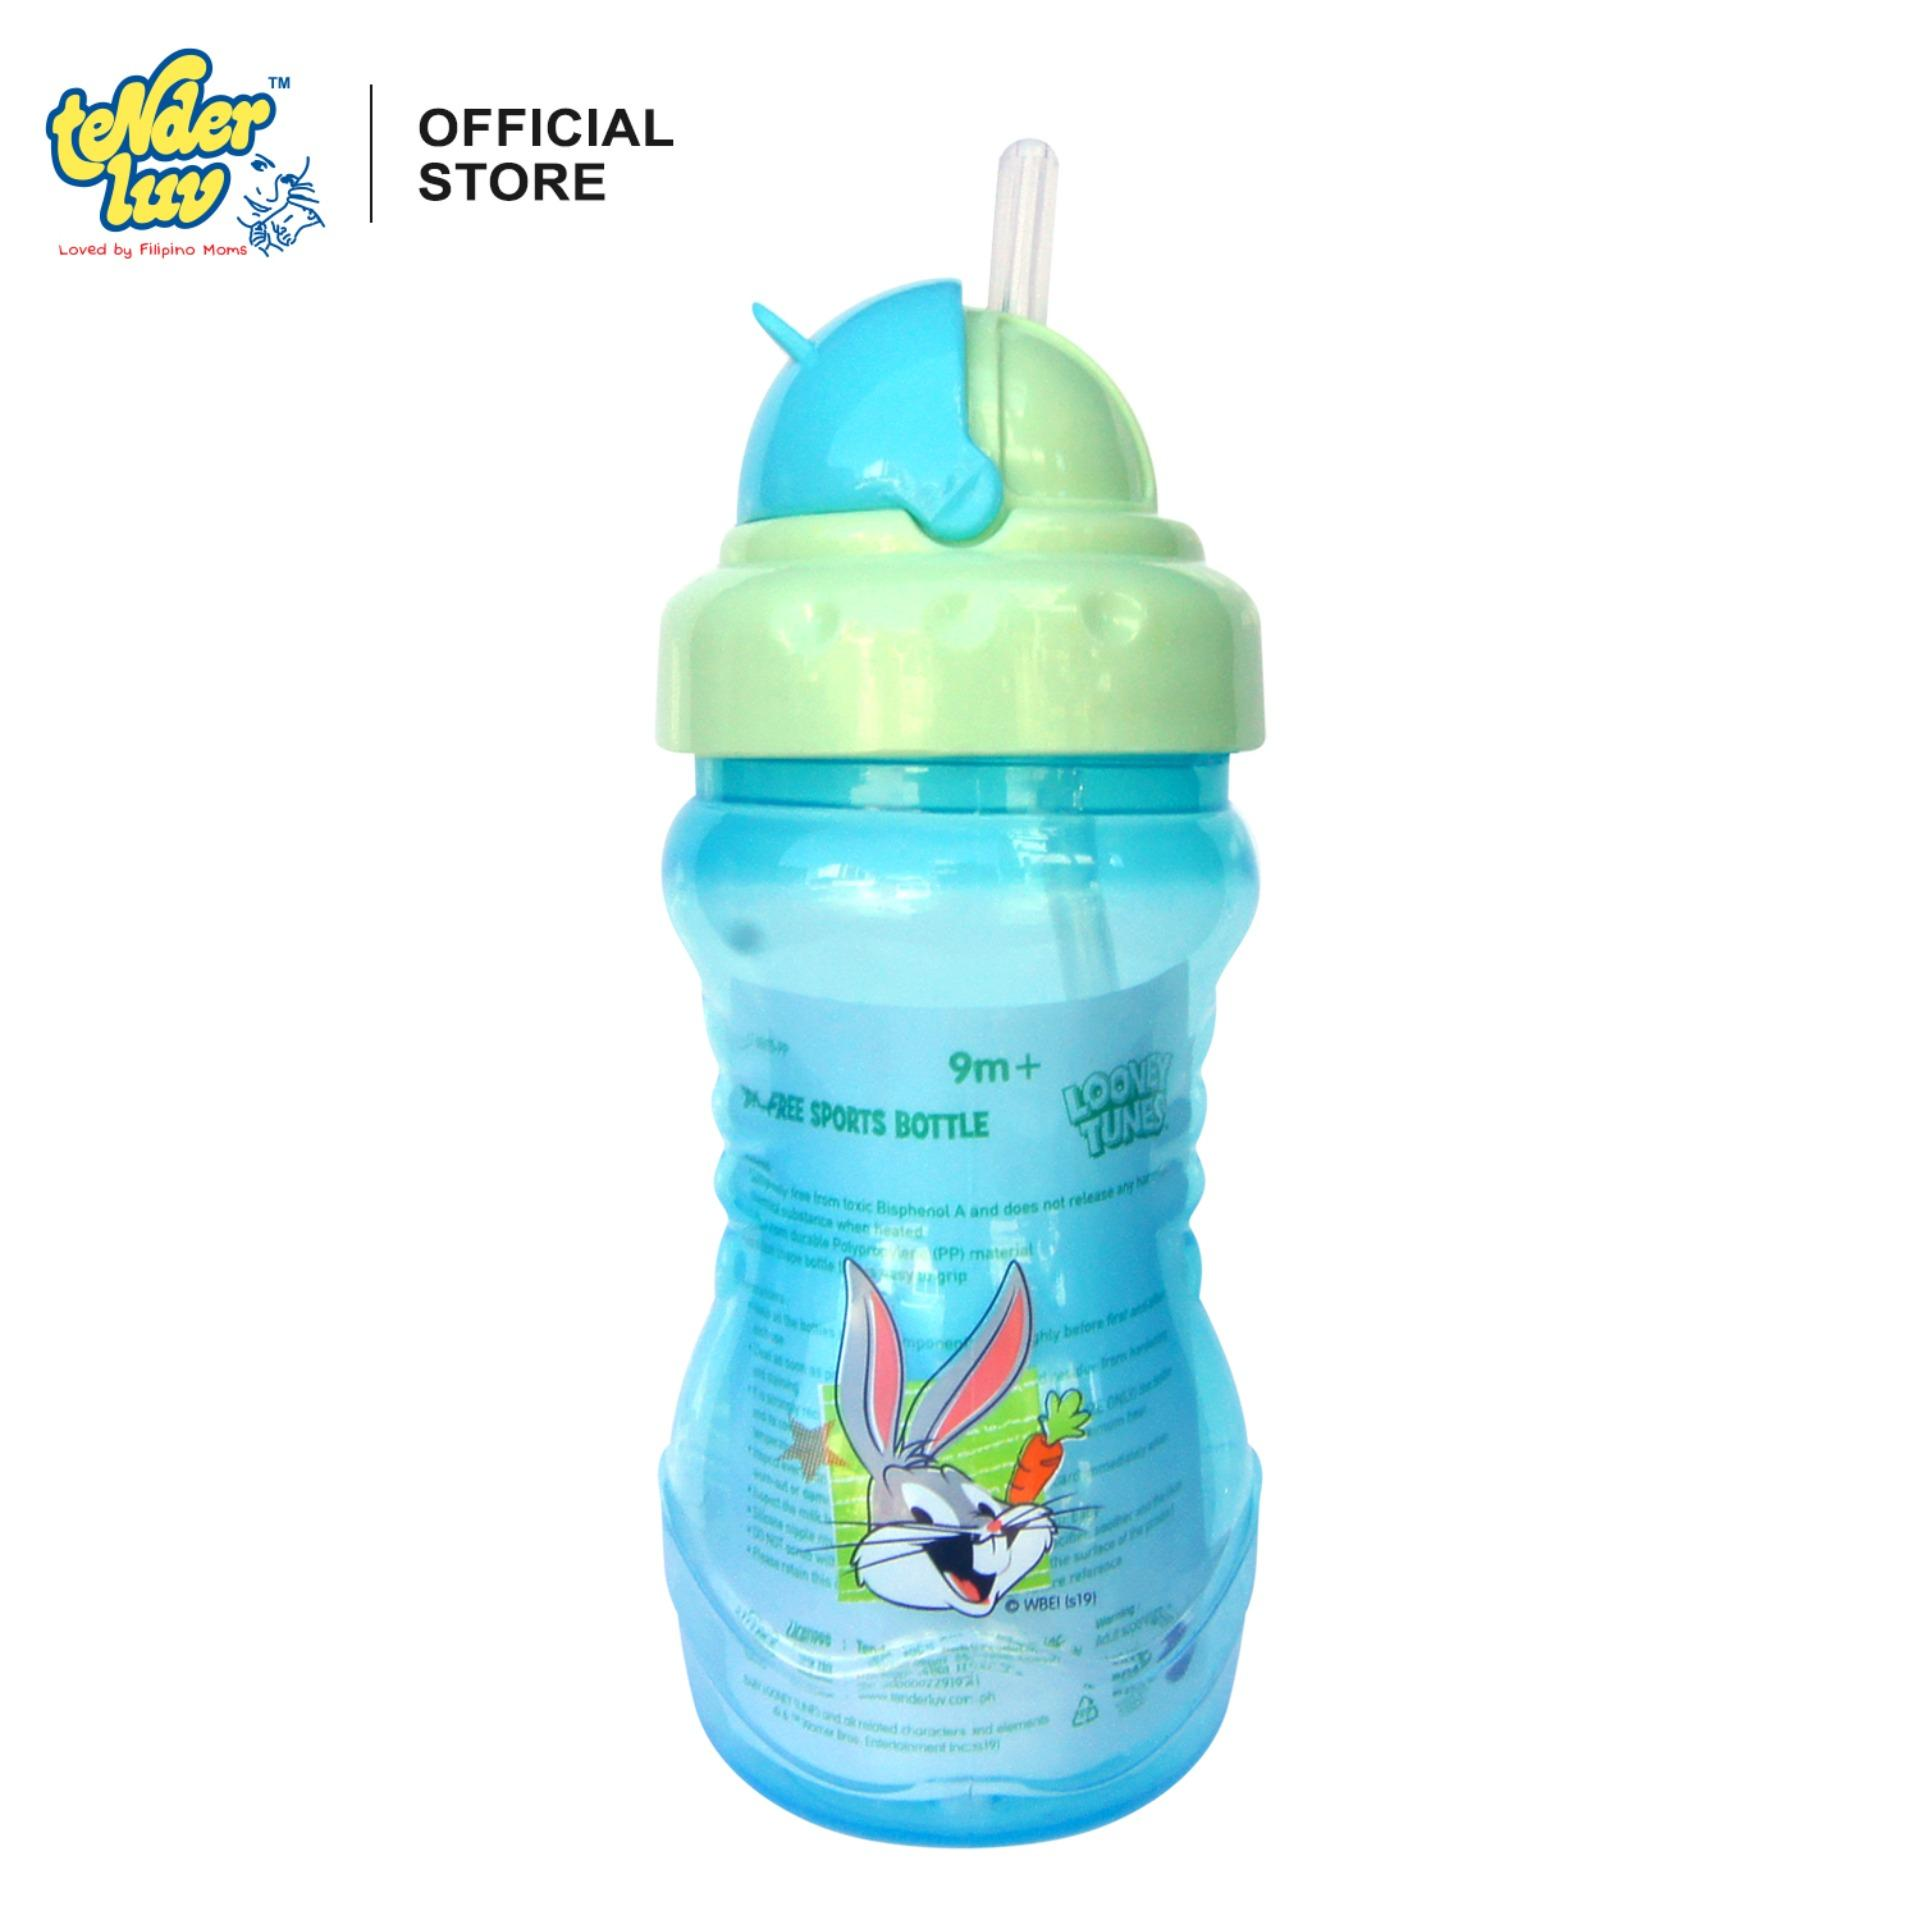 Looney Tunes Bpa-Free Sports Bottle By Tender Luv.